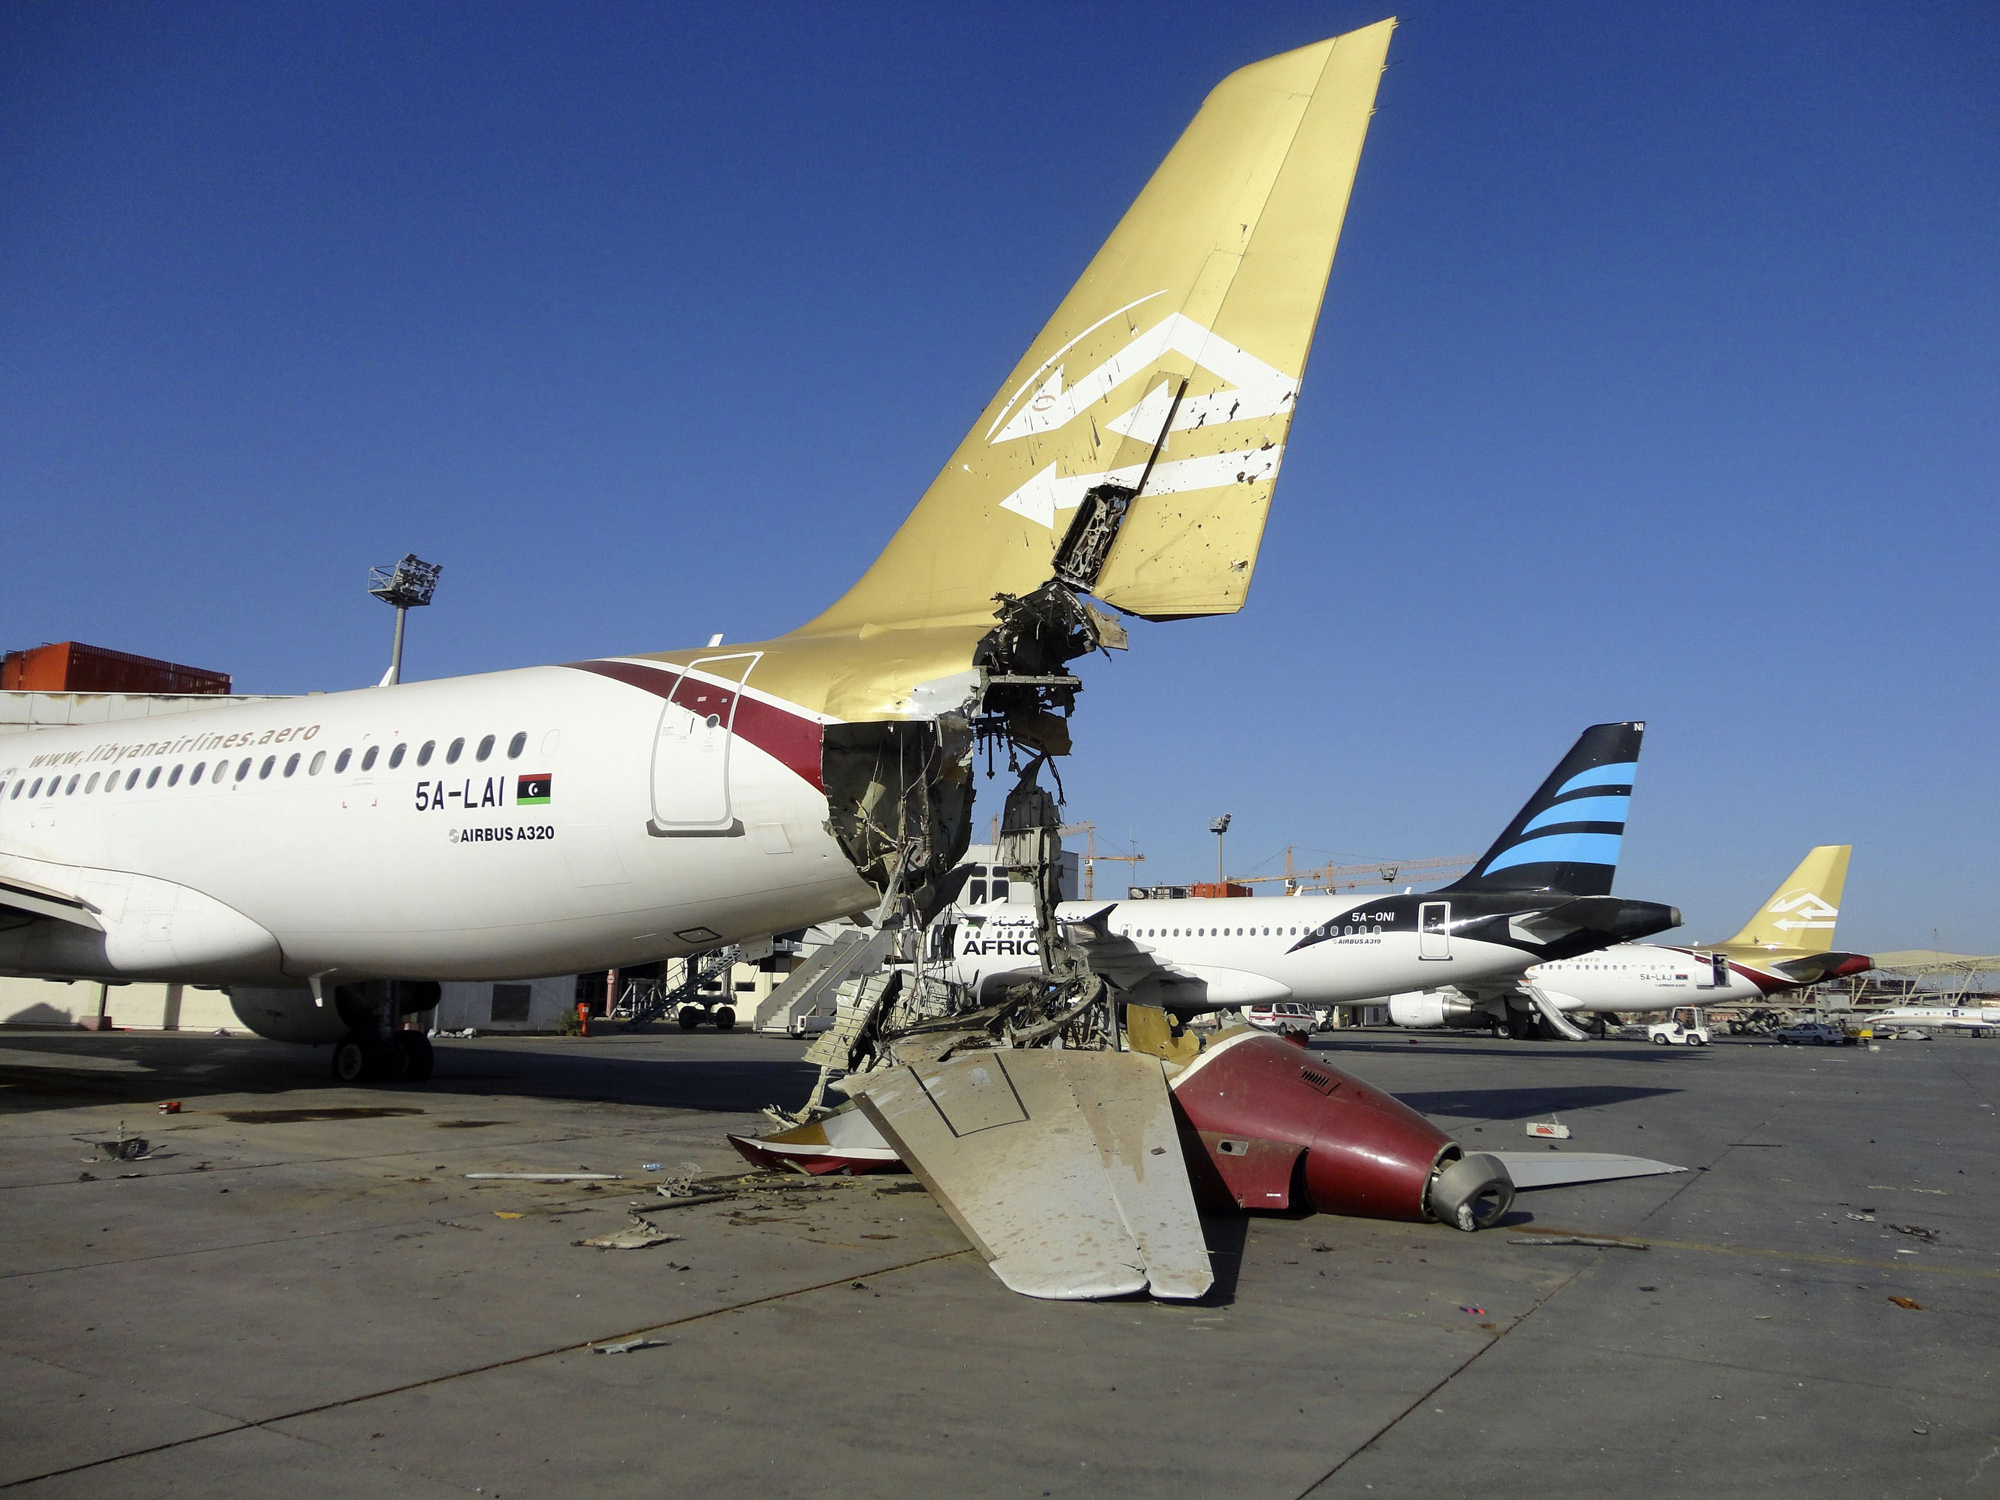 A damaged aircraft is pictured  on Aug. 24 after shelling at Tripoli International Airport